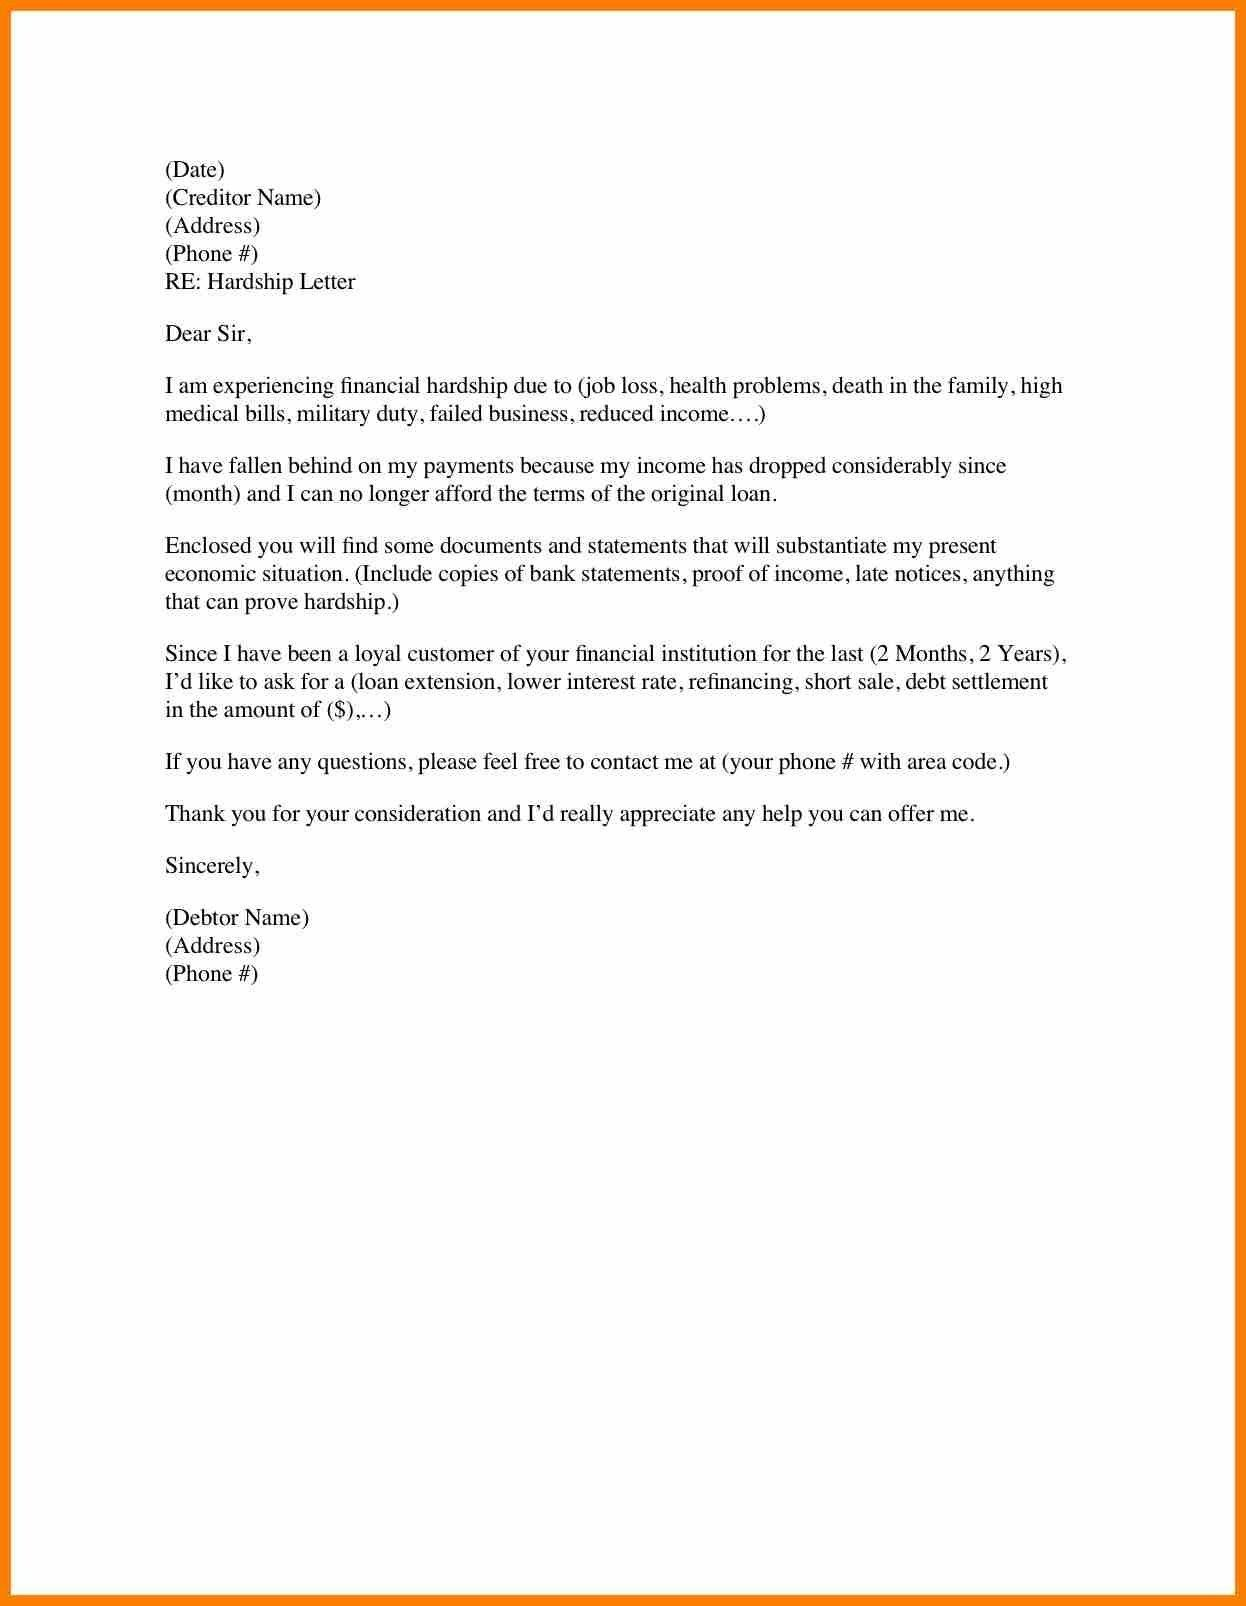 You Can See This New Request Explanation Letter Format At New Request Explanation Letter Format For Free Check More At Lettering Free Checking Medical Billing Letter of explanation for late payment